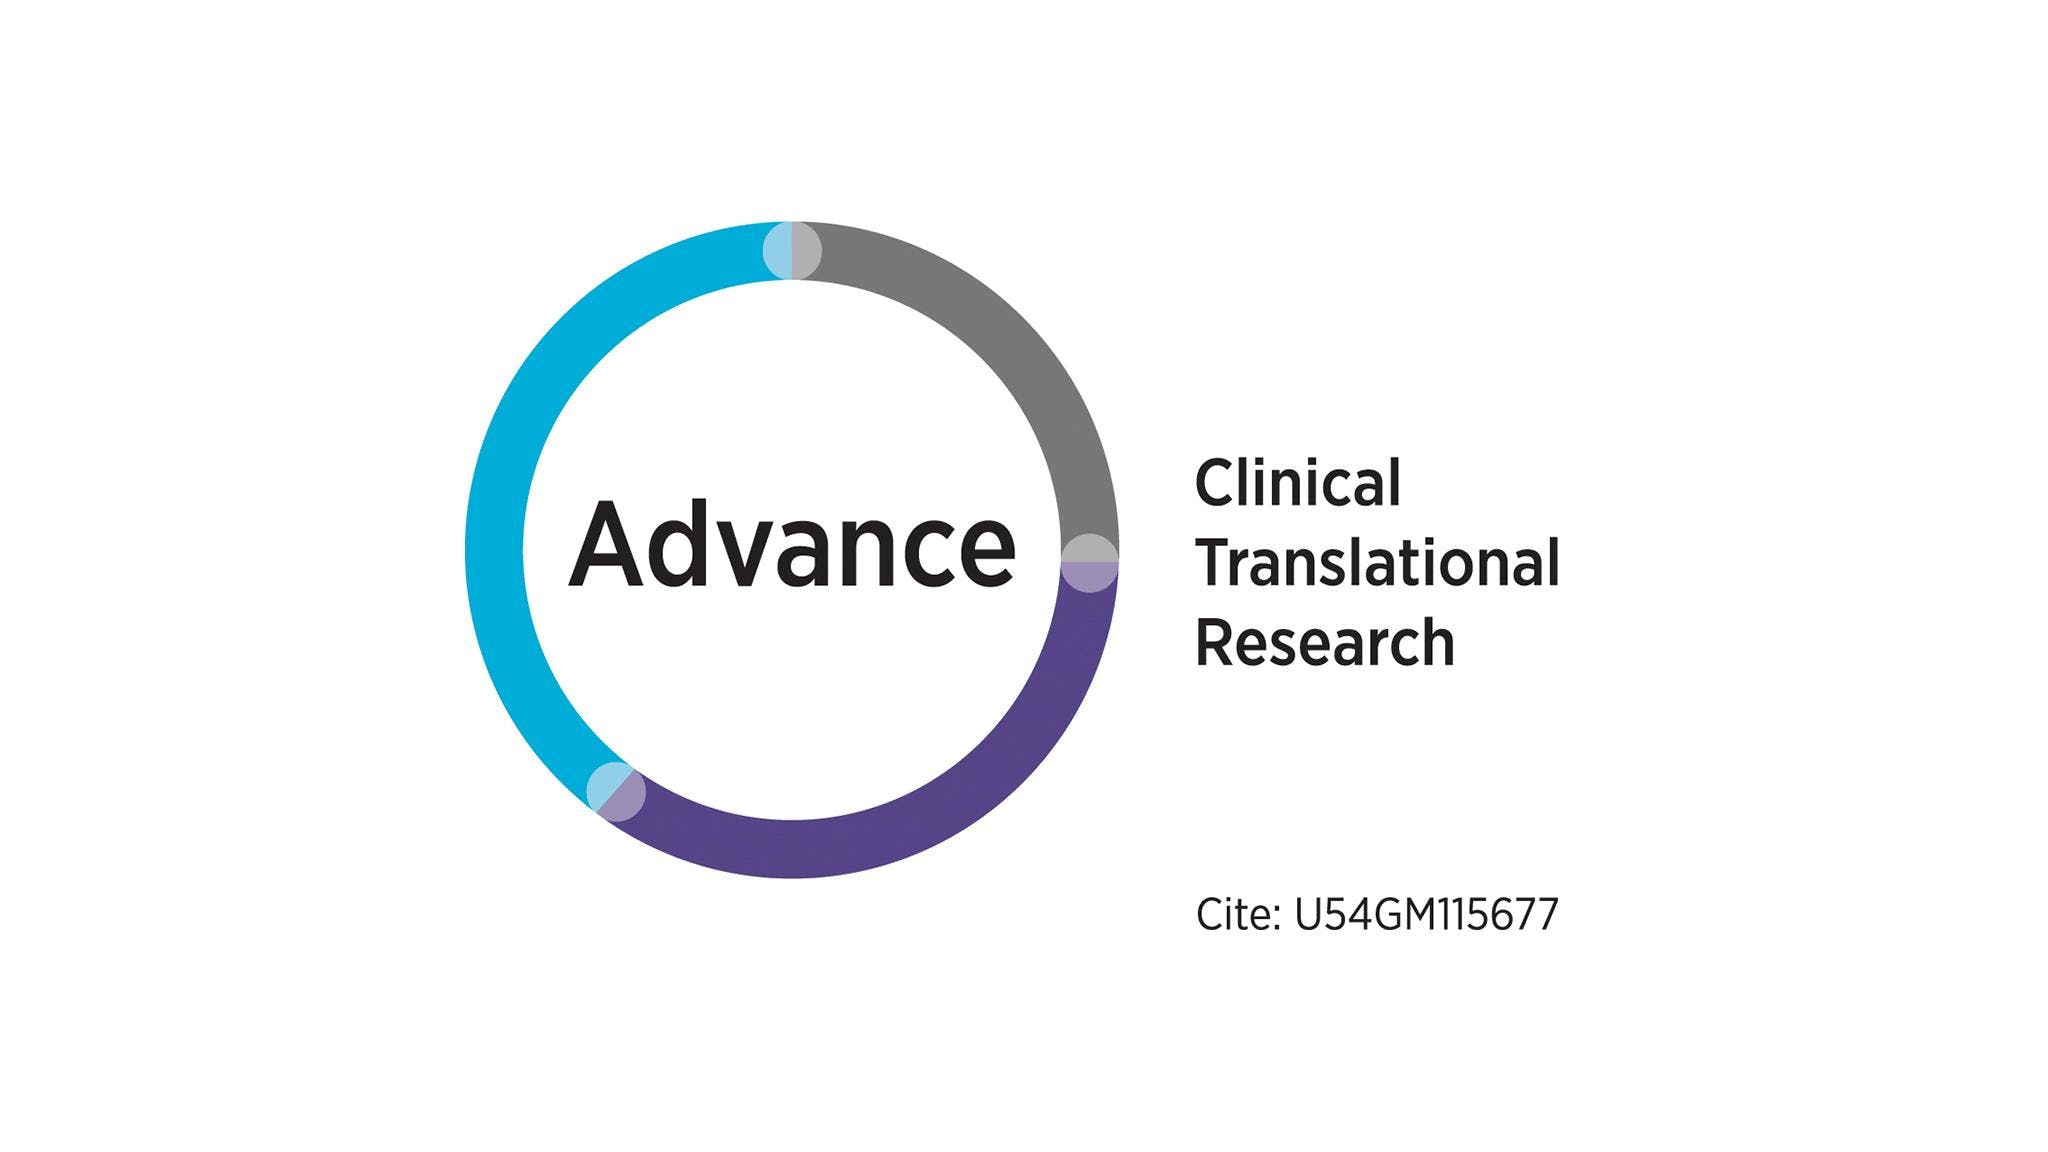 Advance-CTR Statistical Methods in Translational Science Symposium